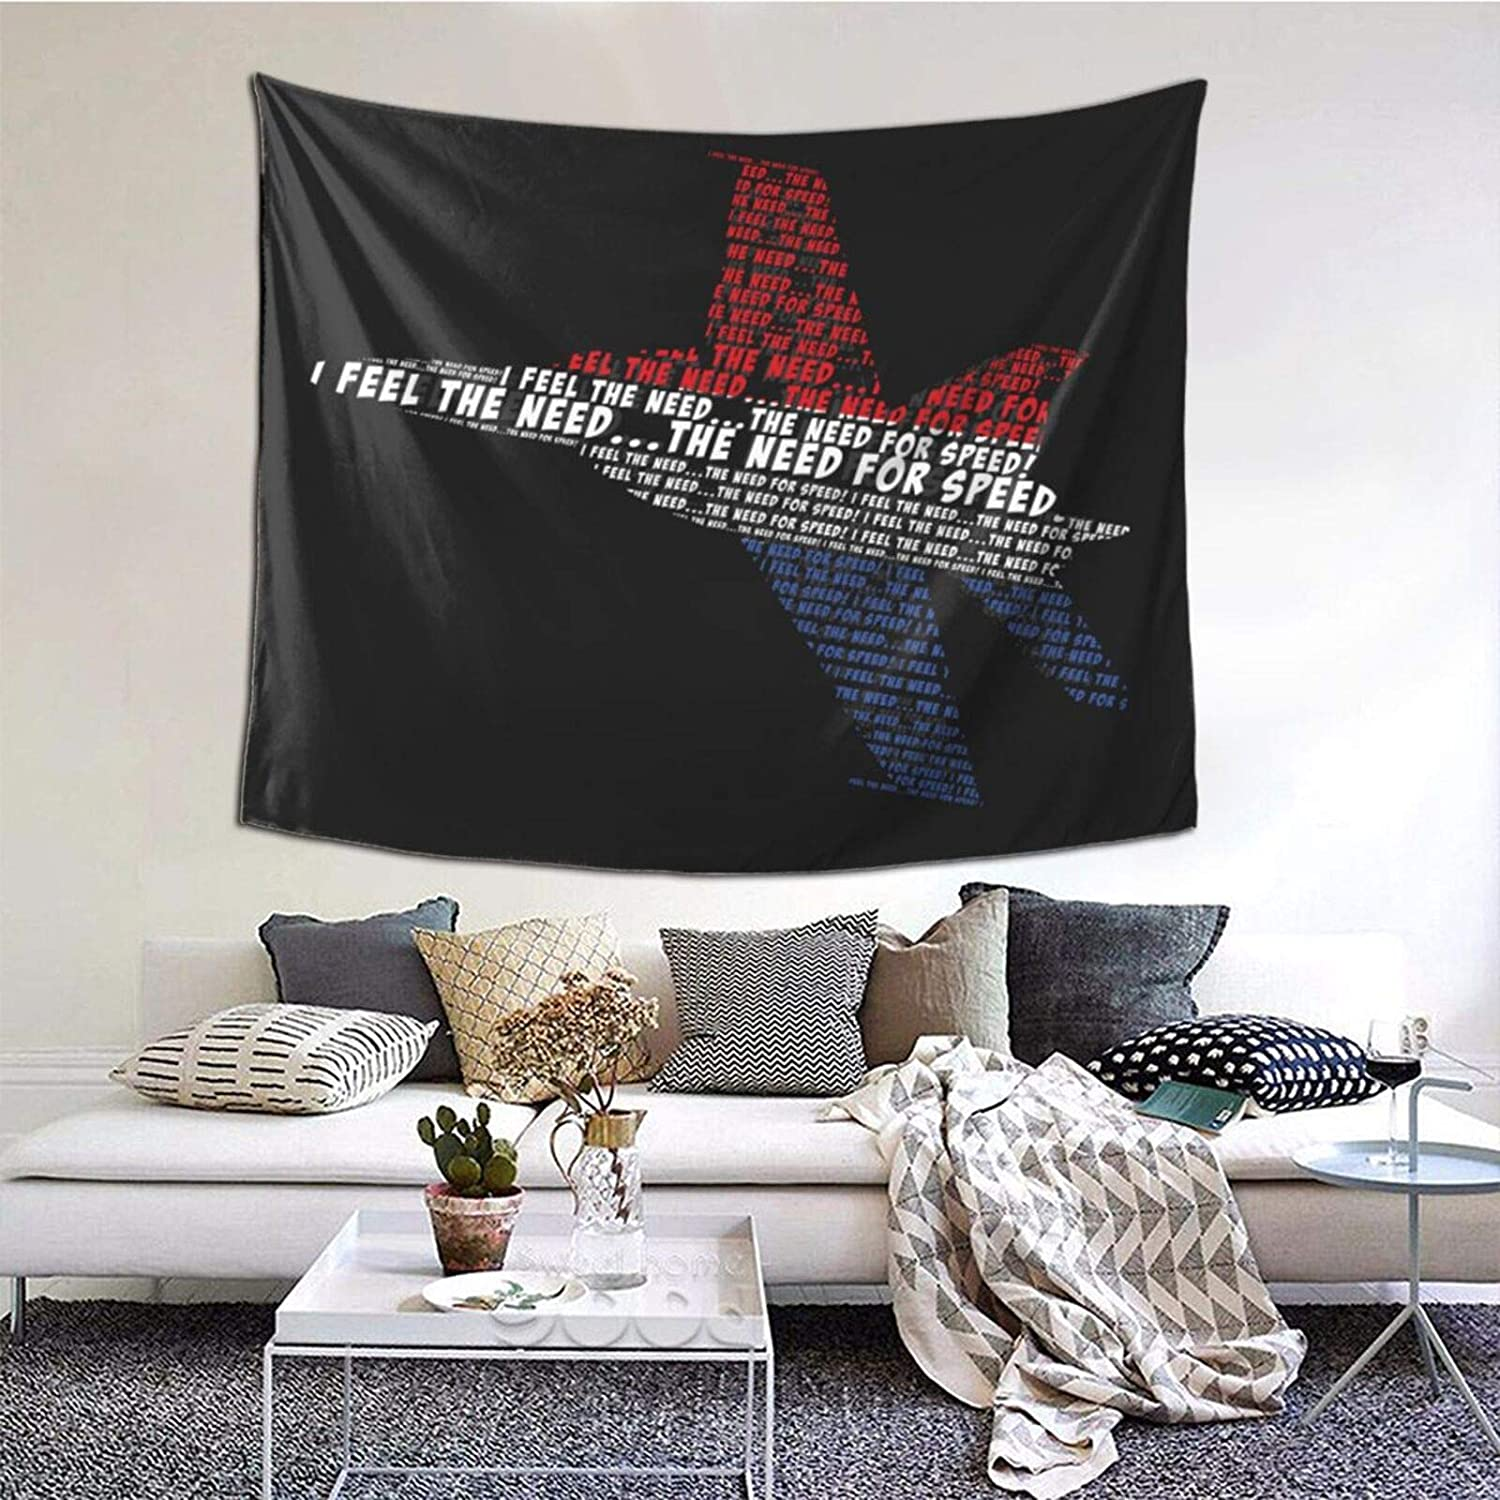 Classic Top Gun The Need For Speed Tapestries With Art Nature Home Stylish Wall Hangings Tapestry Bedroom Party Decor (60 X 51 Inch)